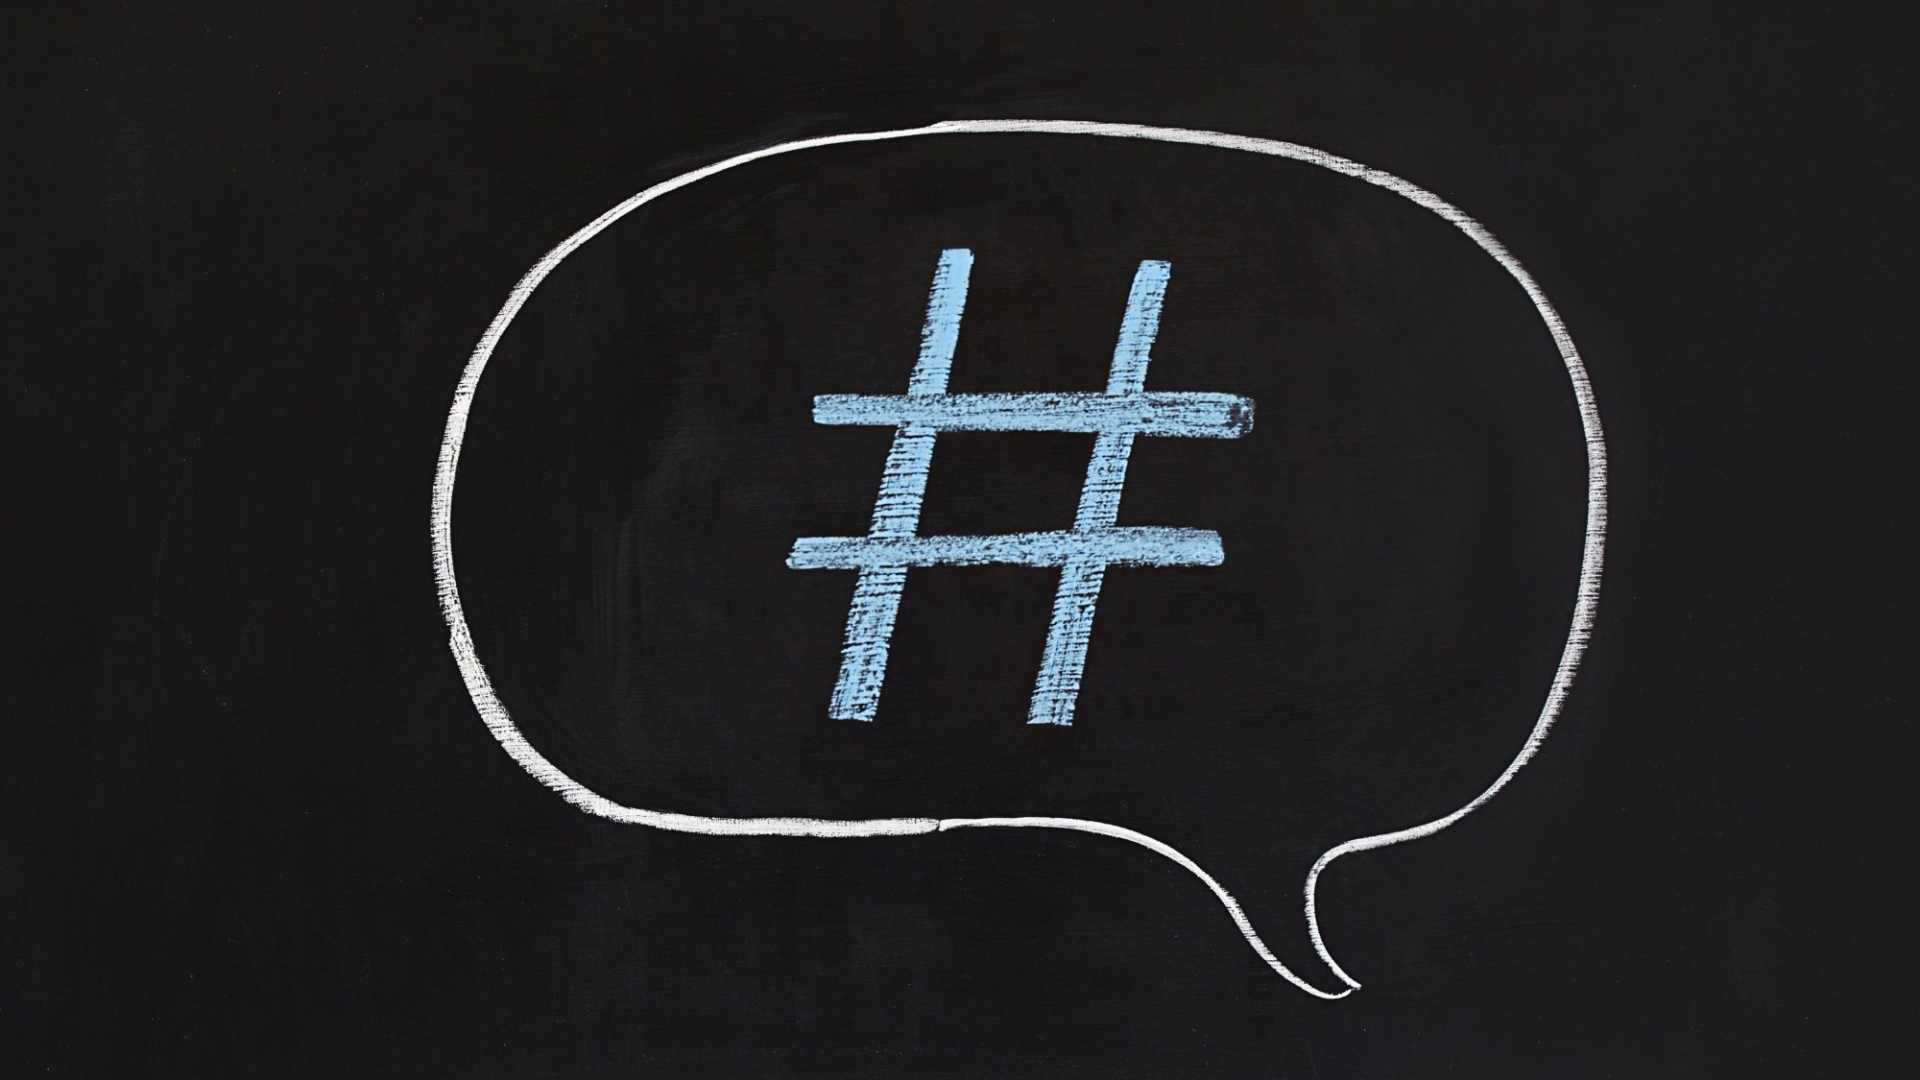 Here's 3 Brands Who Have Smashed These Different Hashtag Trends--So Can You